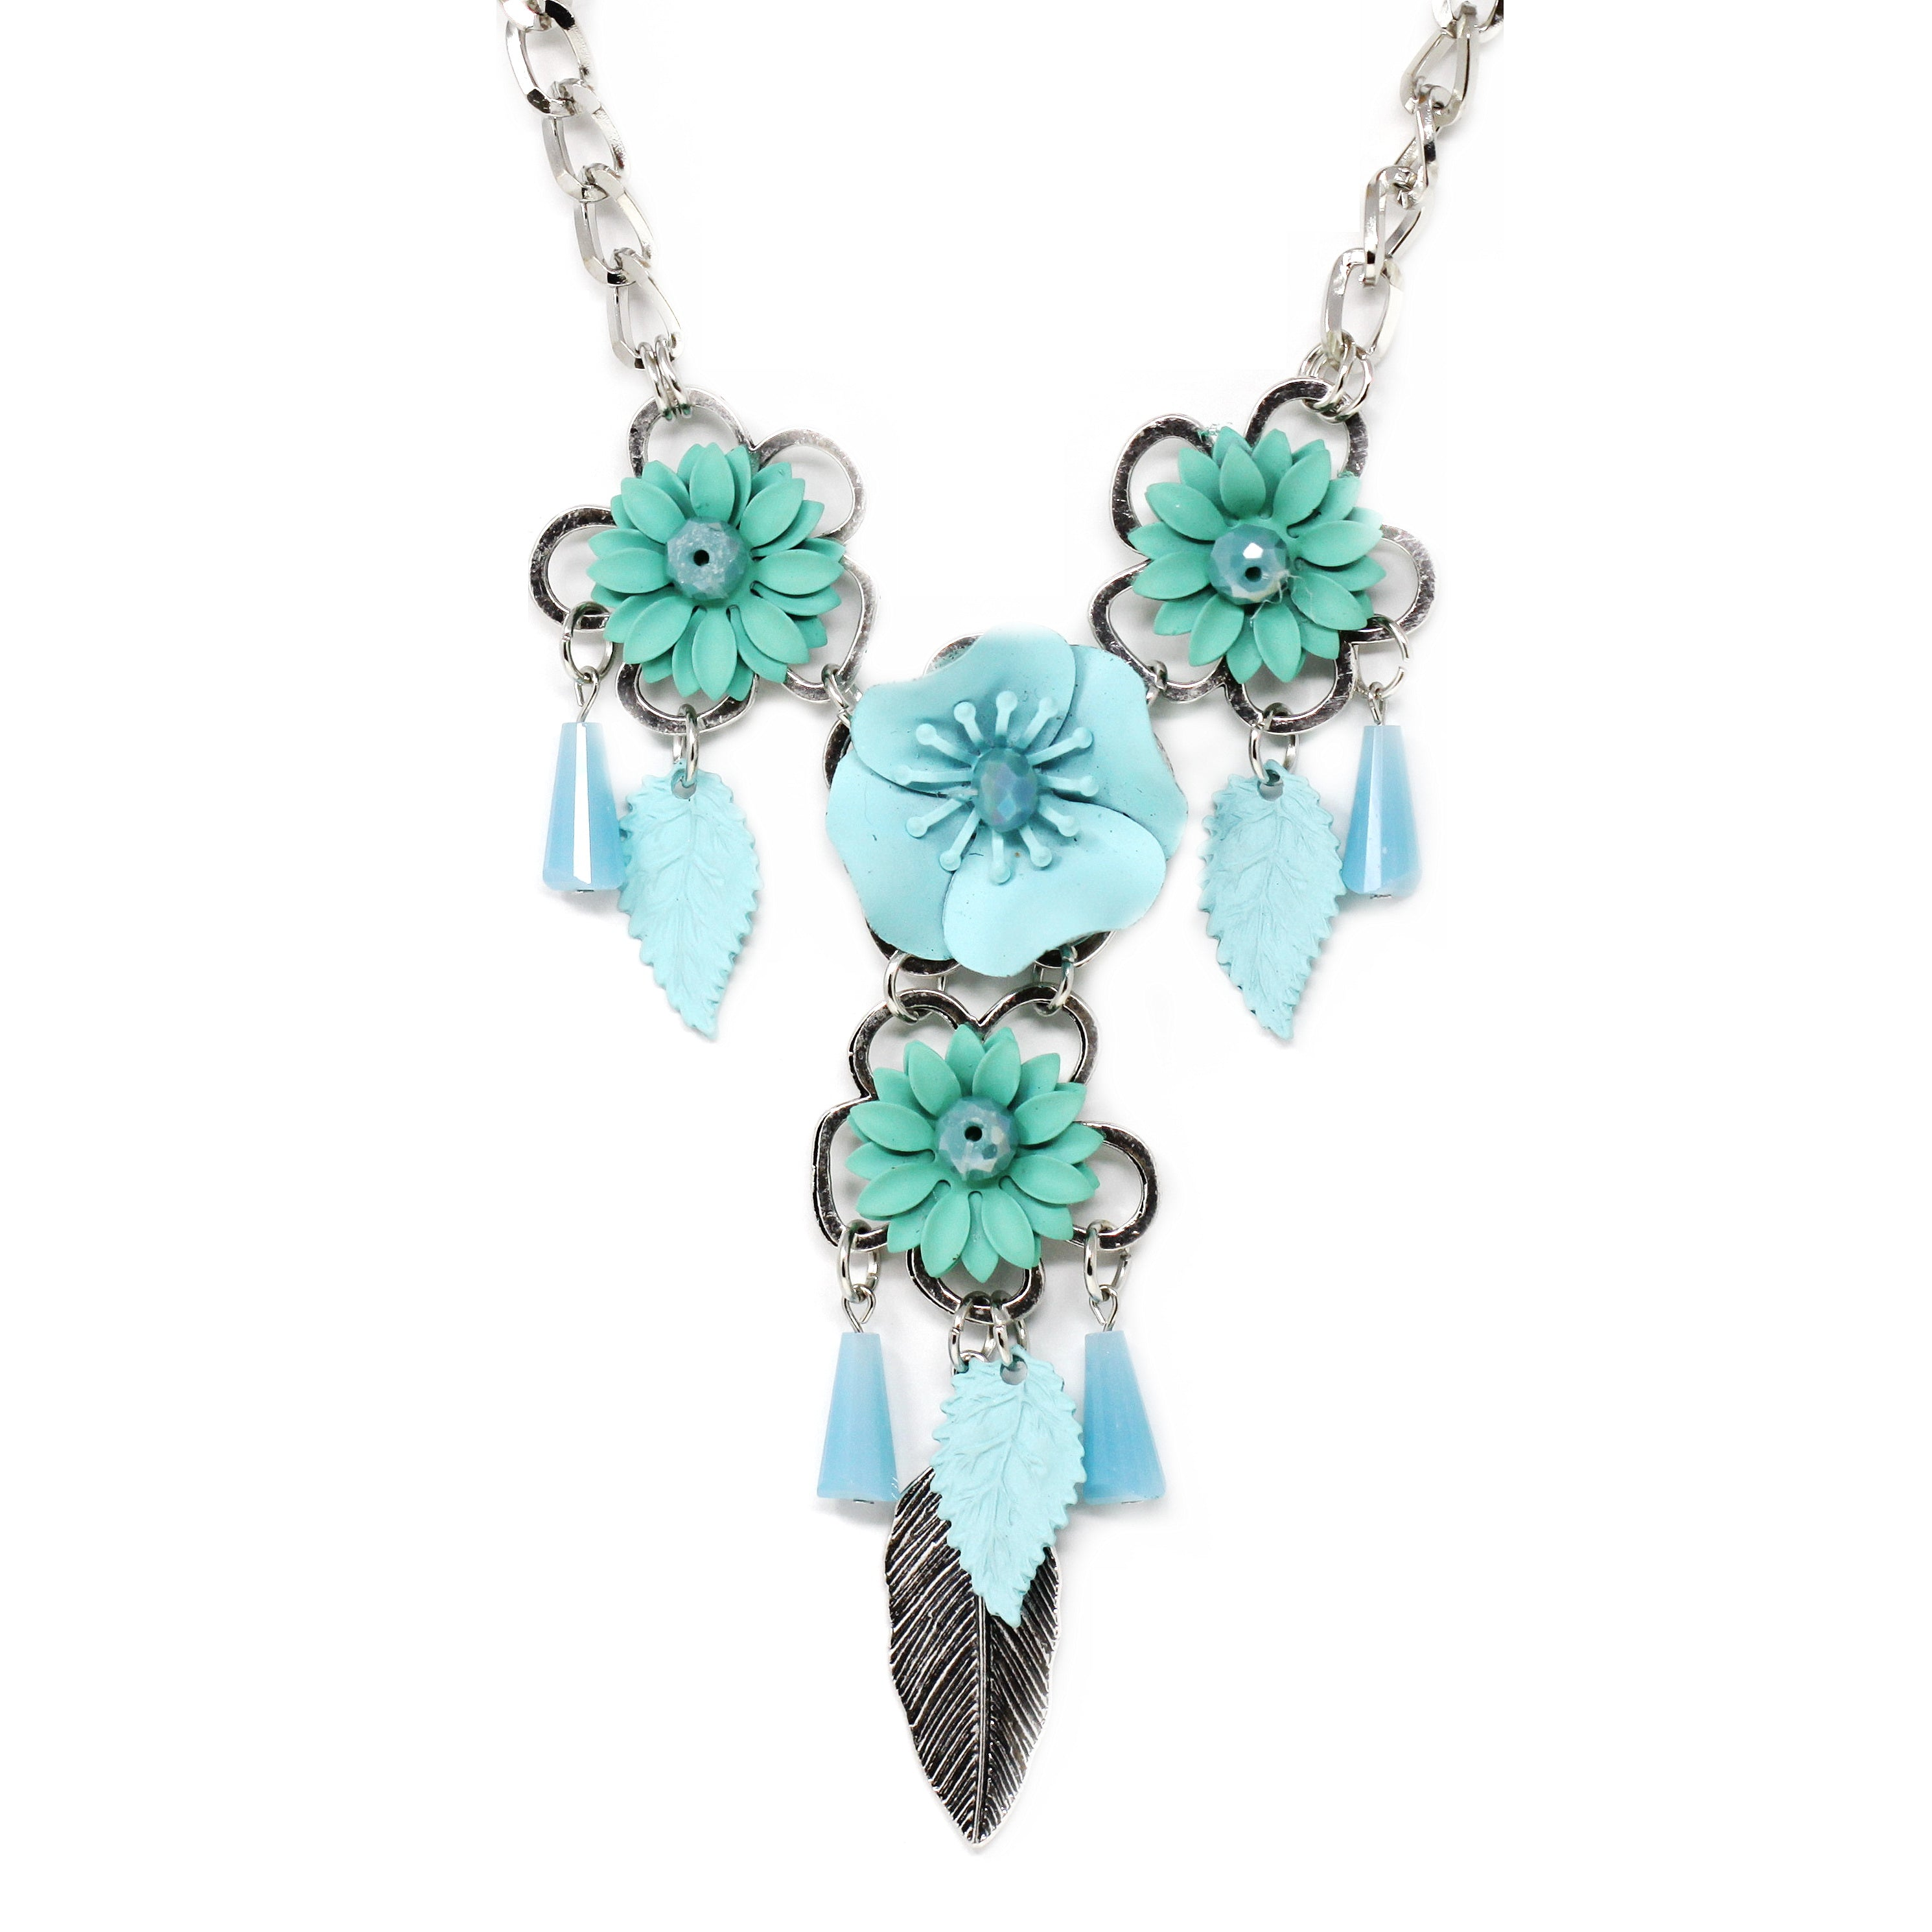 3D Flower Metal Leaf Short Necklace